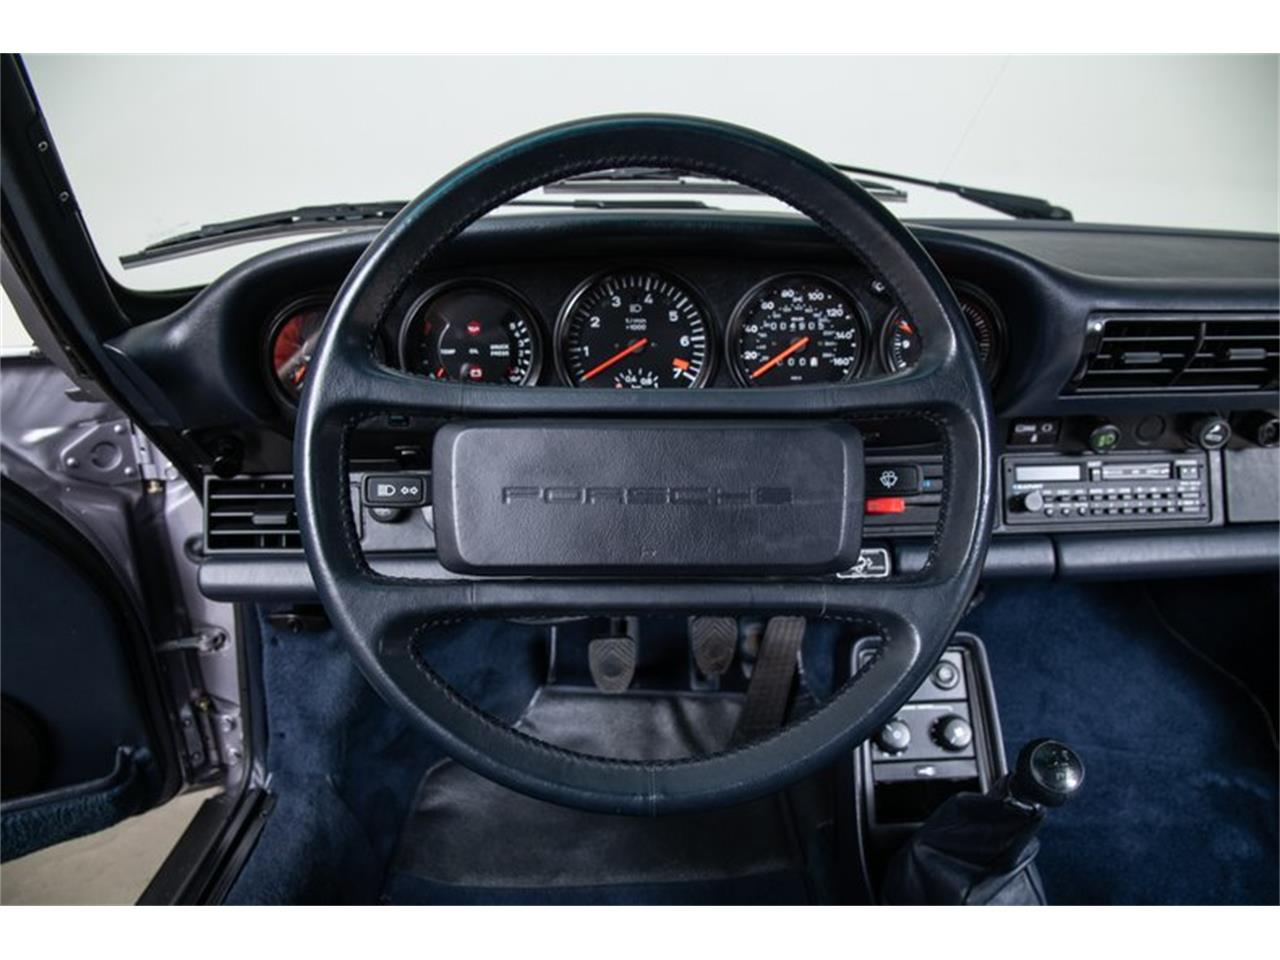 1988 Porsche 911 Carrera Turbo (CC-1322888) for sale in Scotts Valley, California